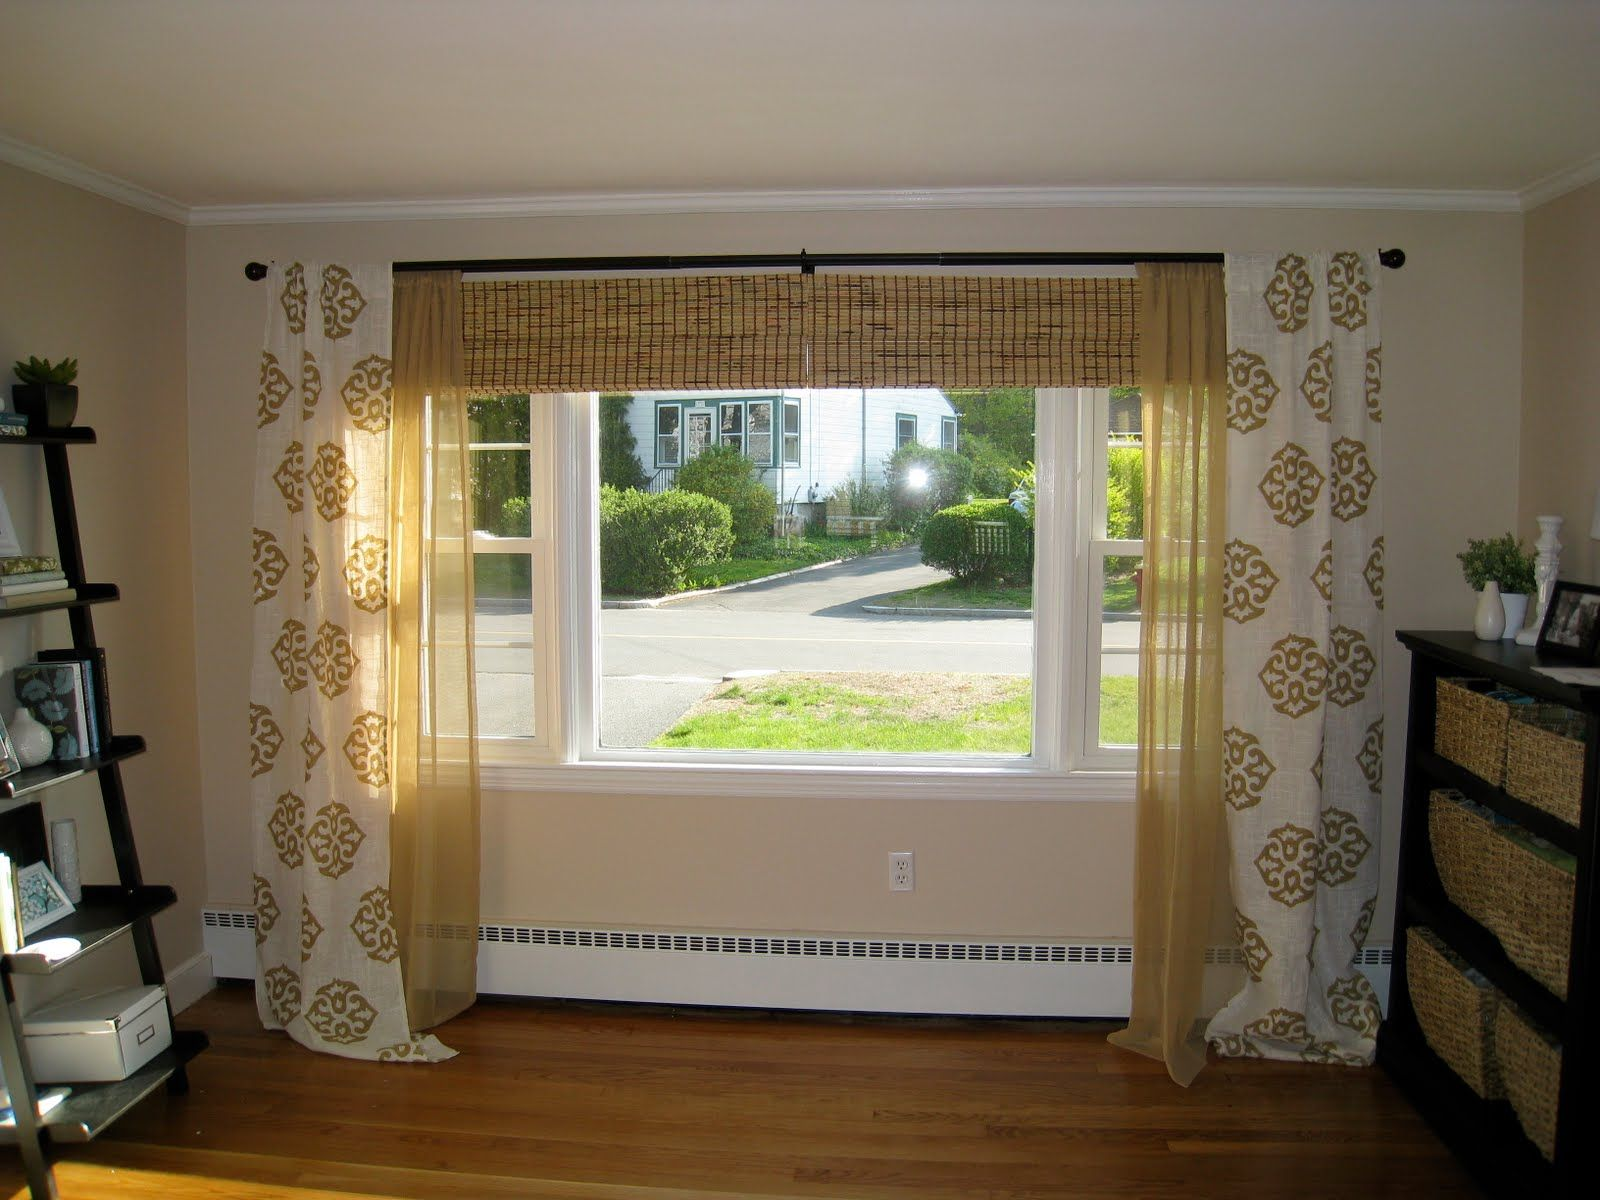 Reno 366 Curtains Round 3 Window Curtains Living Room Window Treatments Living Room Large Window Curtains